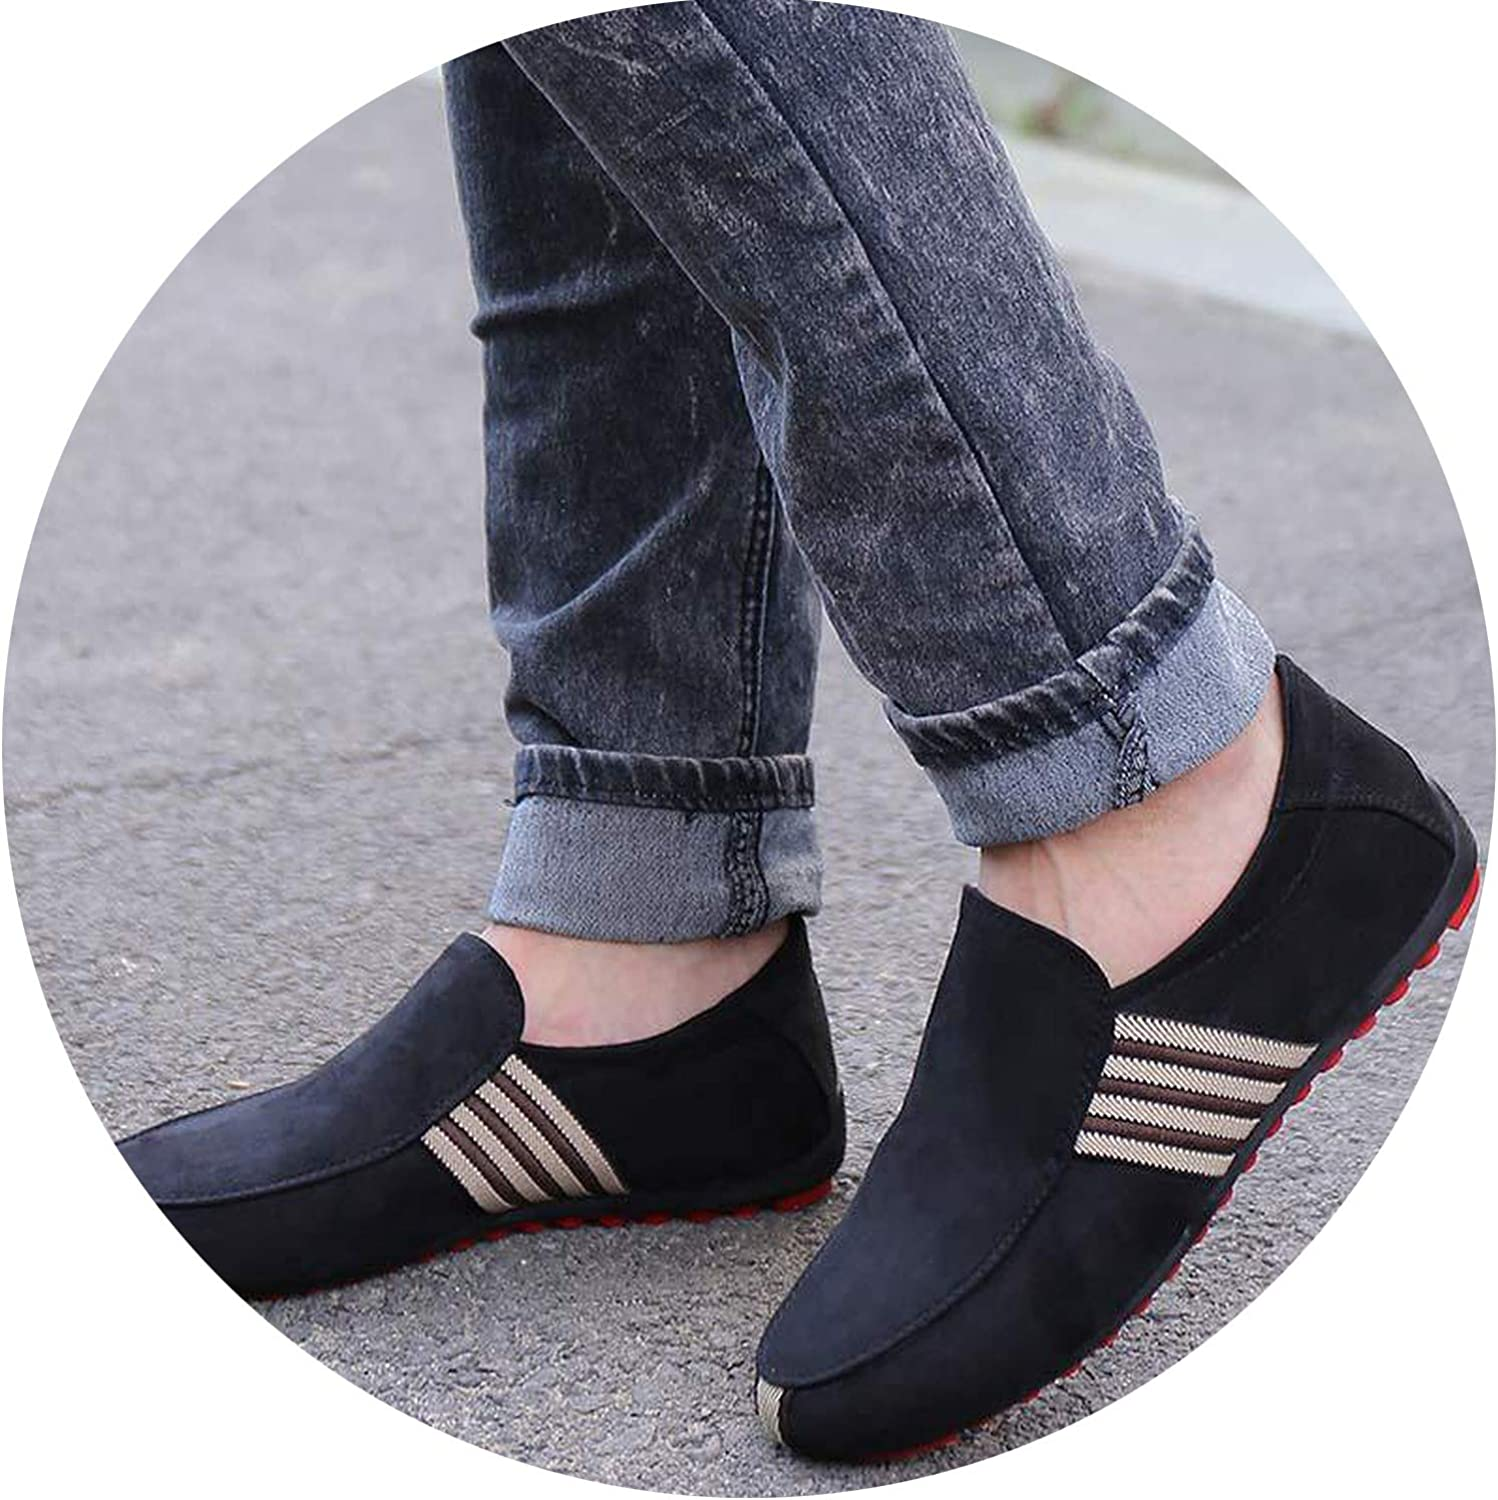 2019 New Spring Men Suede Leather Loafers Driving Shoes Moccasins Summer Fashion Mens Casual Shoes Flat Breathable Lazy Flats,Fabric Black,8,Spain